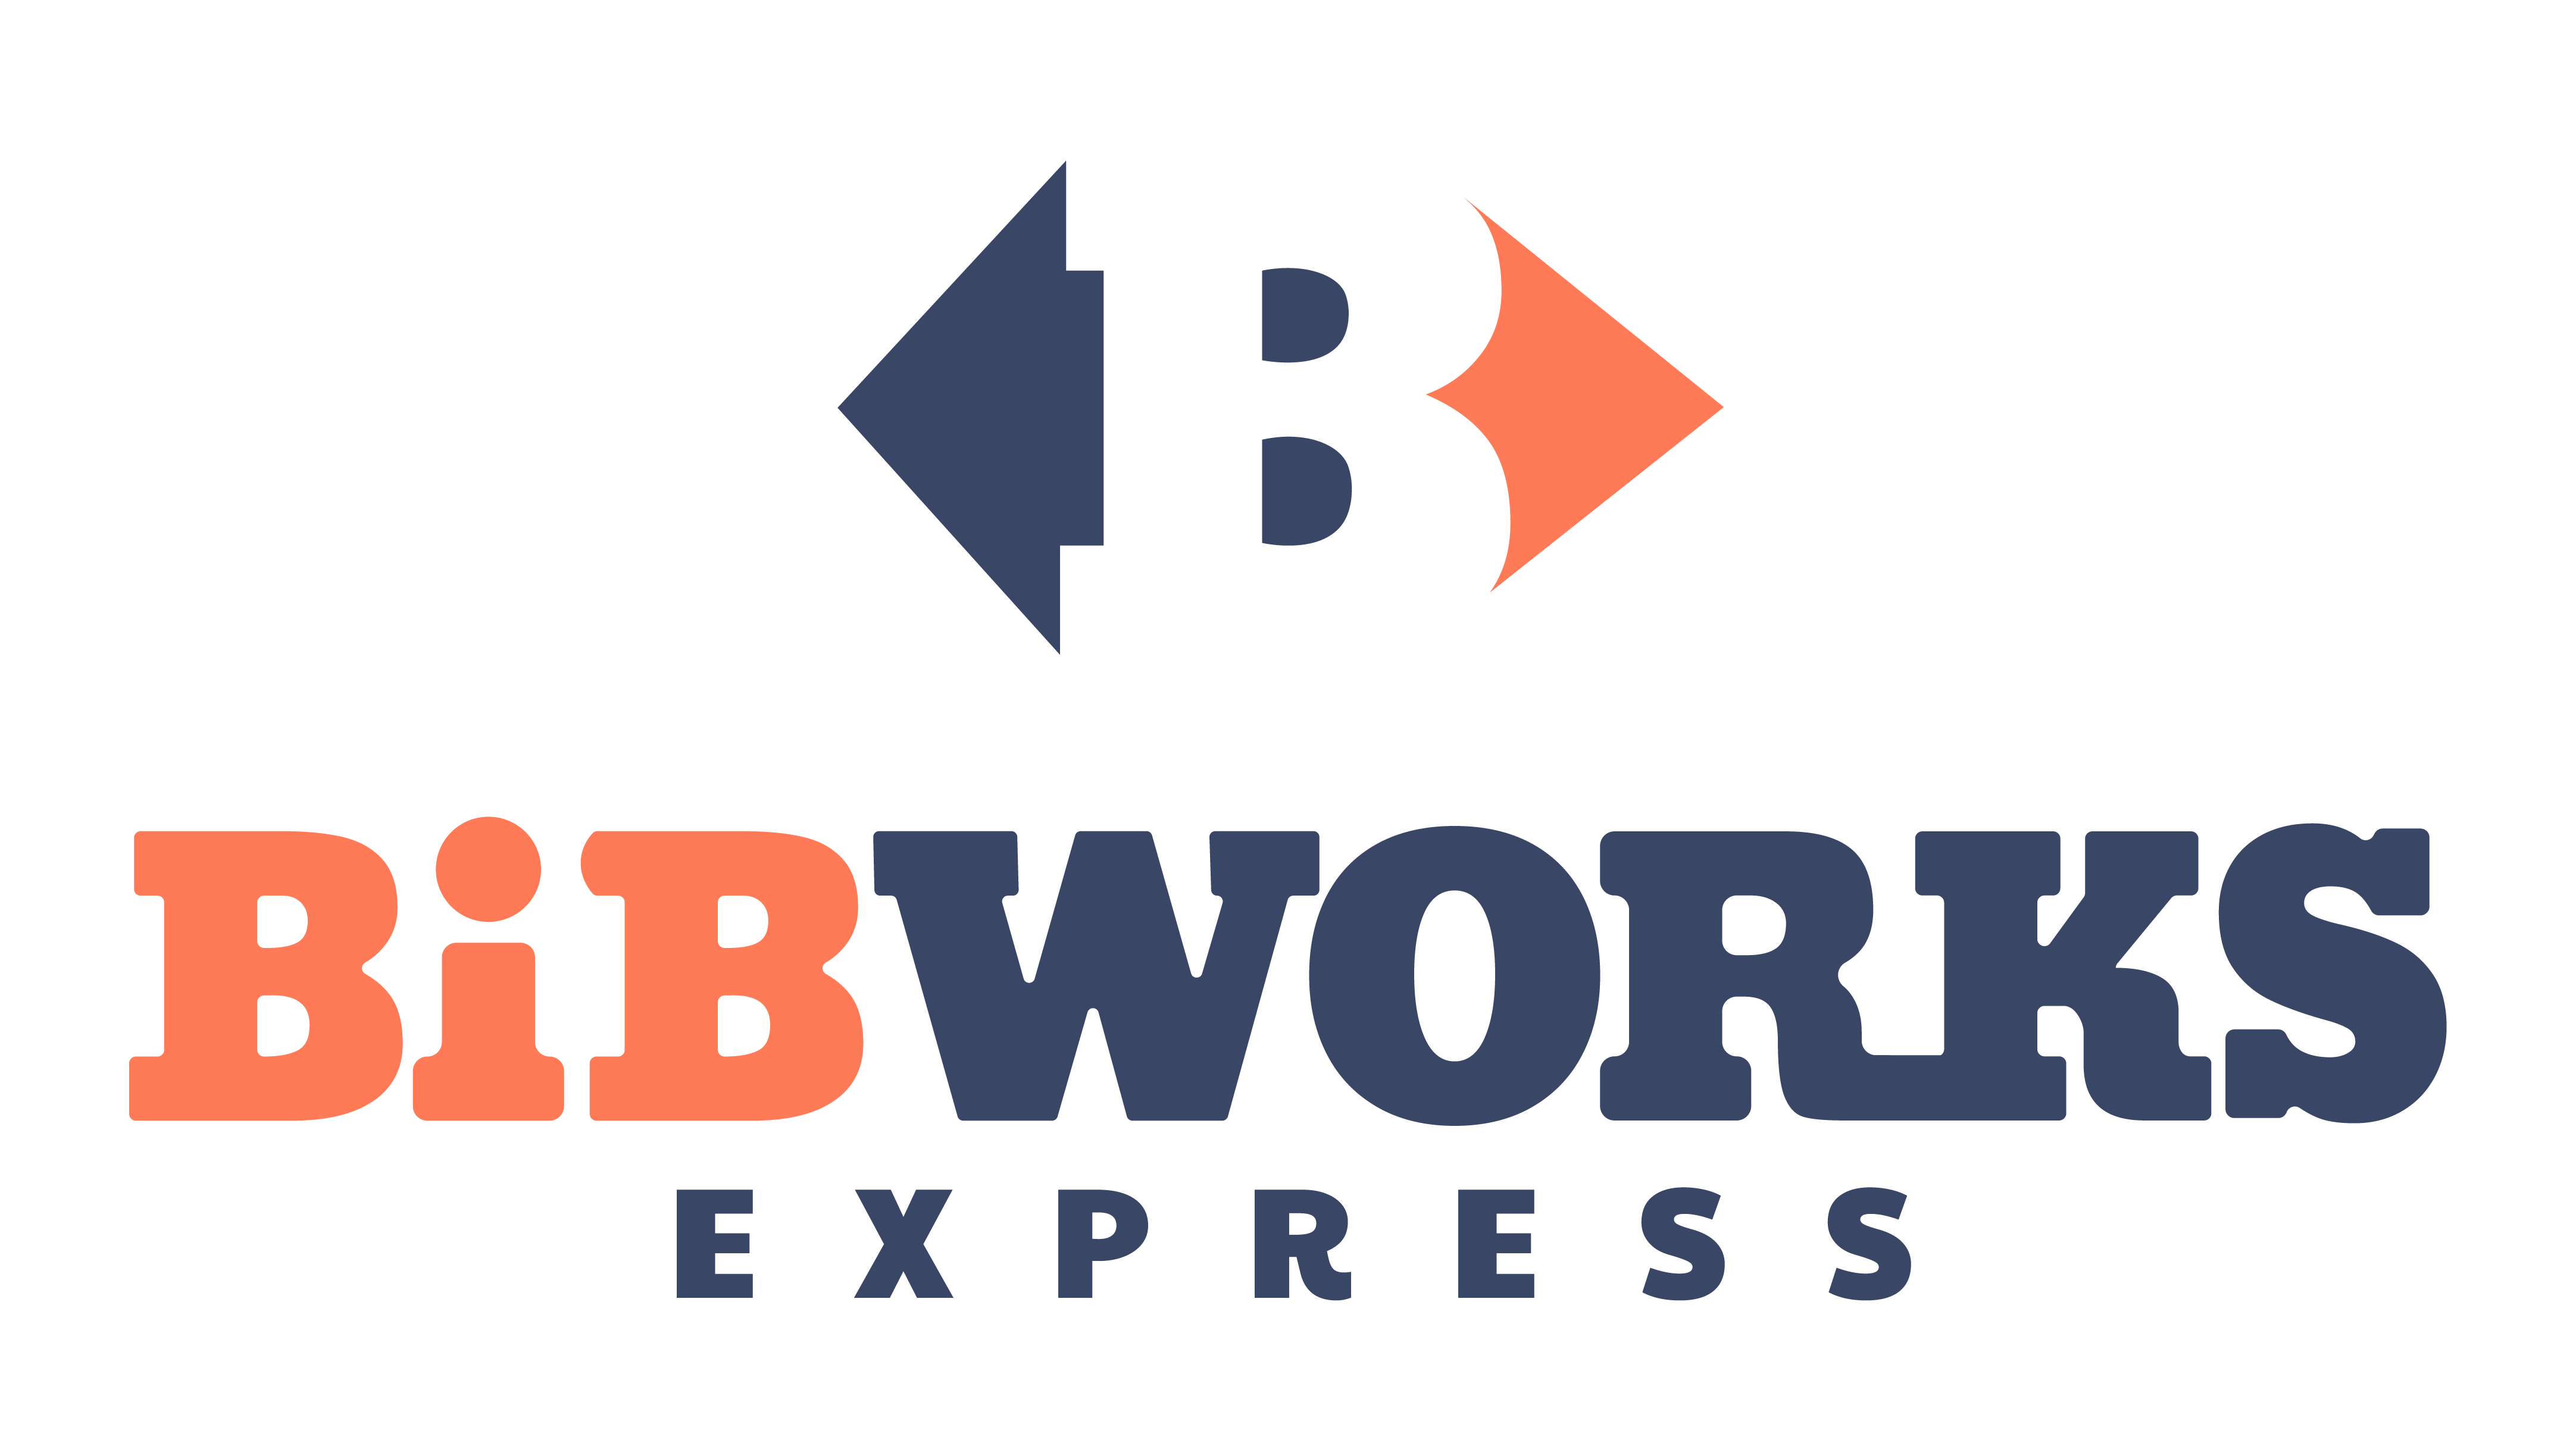 Justin Philip Cuevas on BiBWorks Express: Why It's More than Just a Delivery App